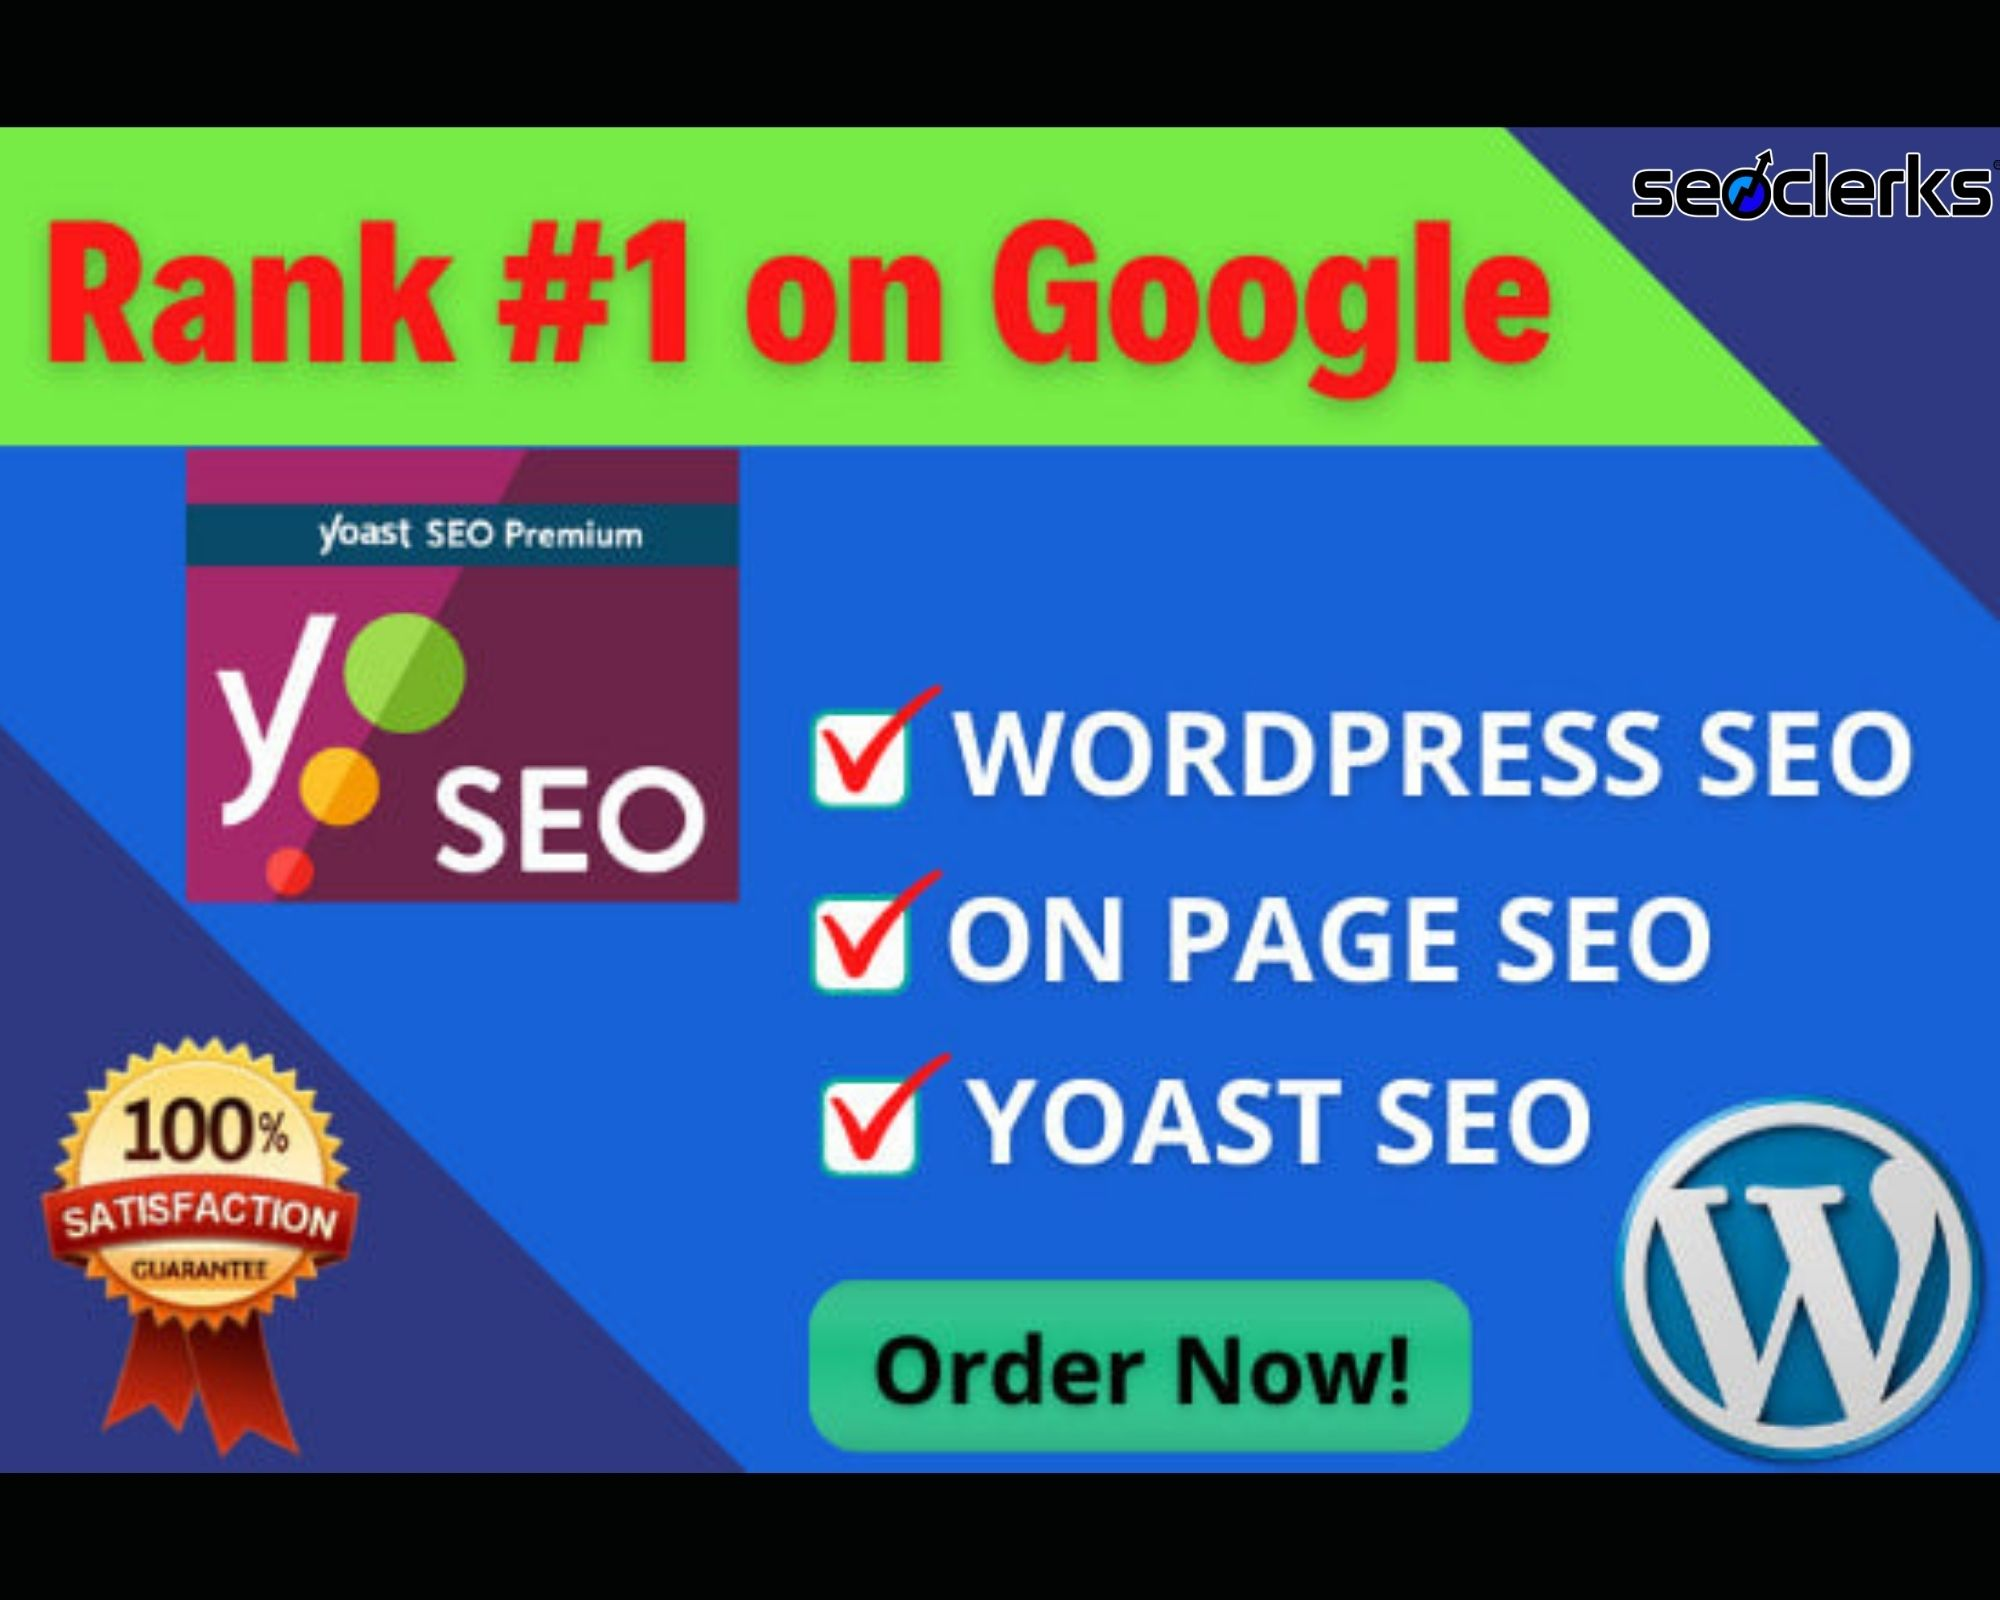 I will do yoast on page SEO and technical optimization of wordpress site